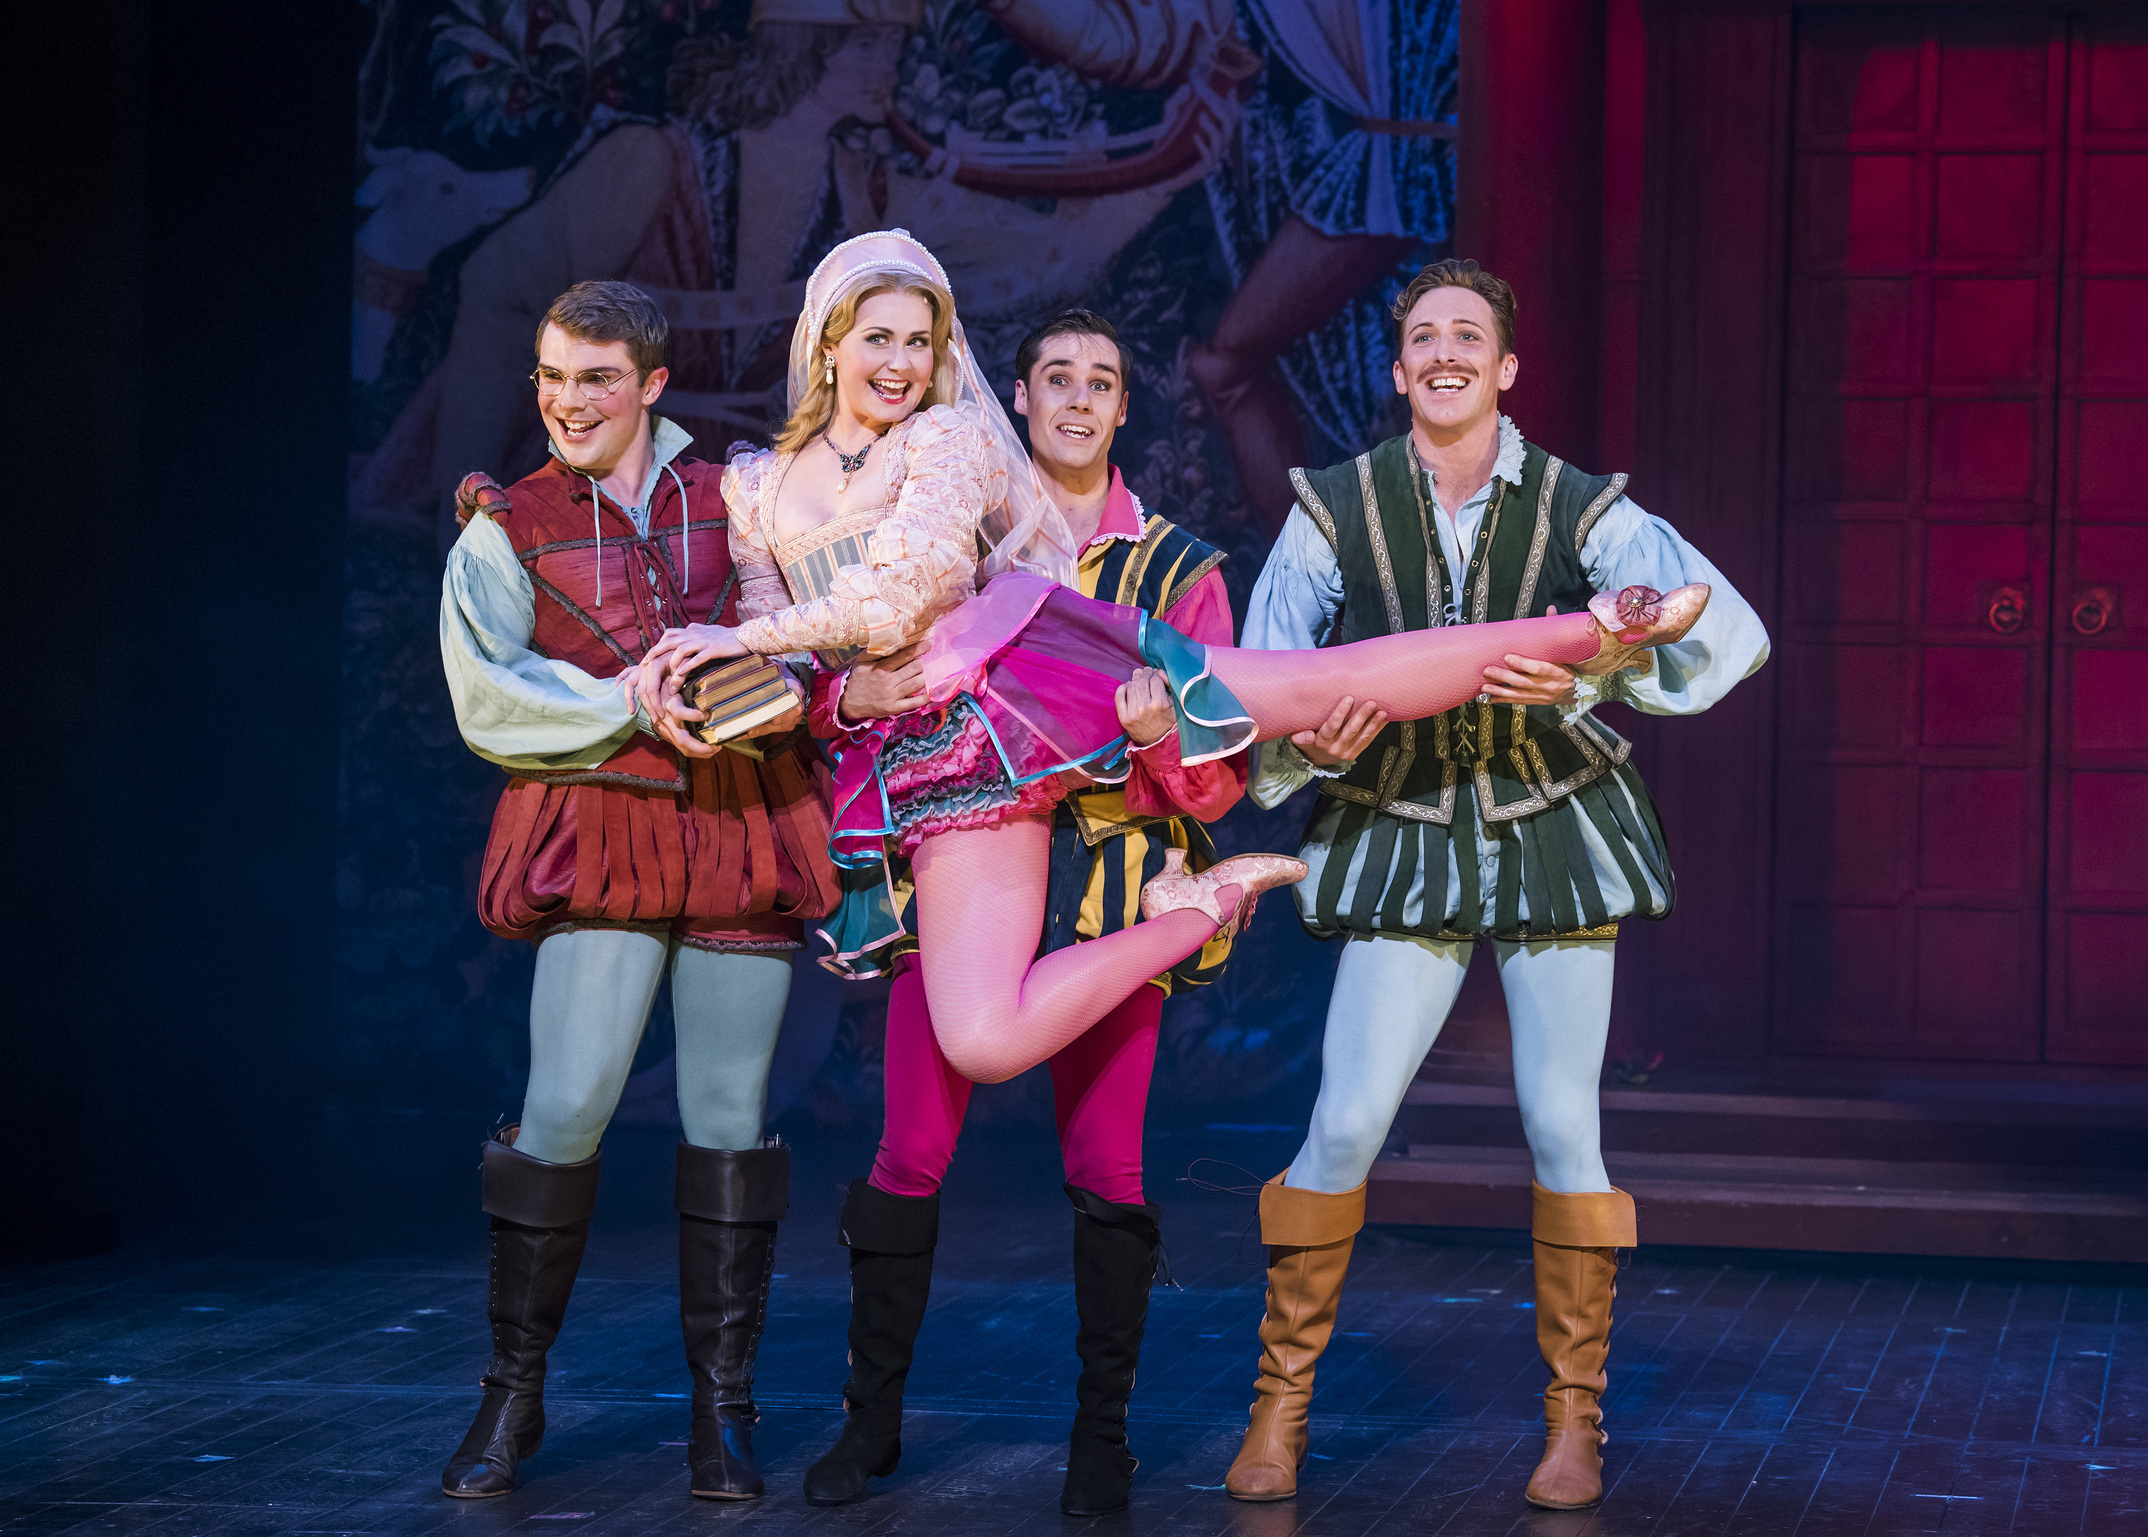 A scene from Kiss Me Kate by Cole Porter @ Grand Theatre, Leeds. An Opera North and Welsh National Opera Production.